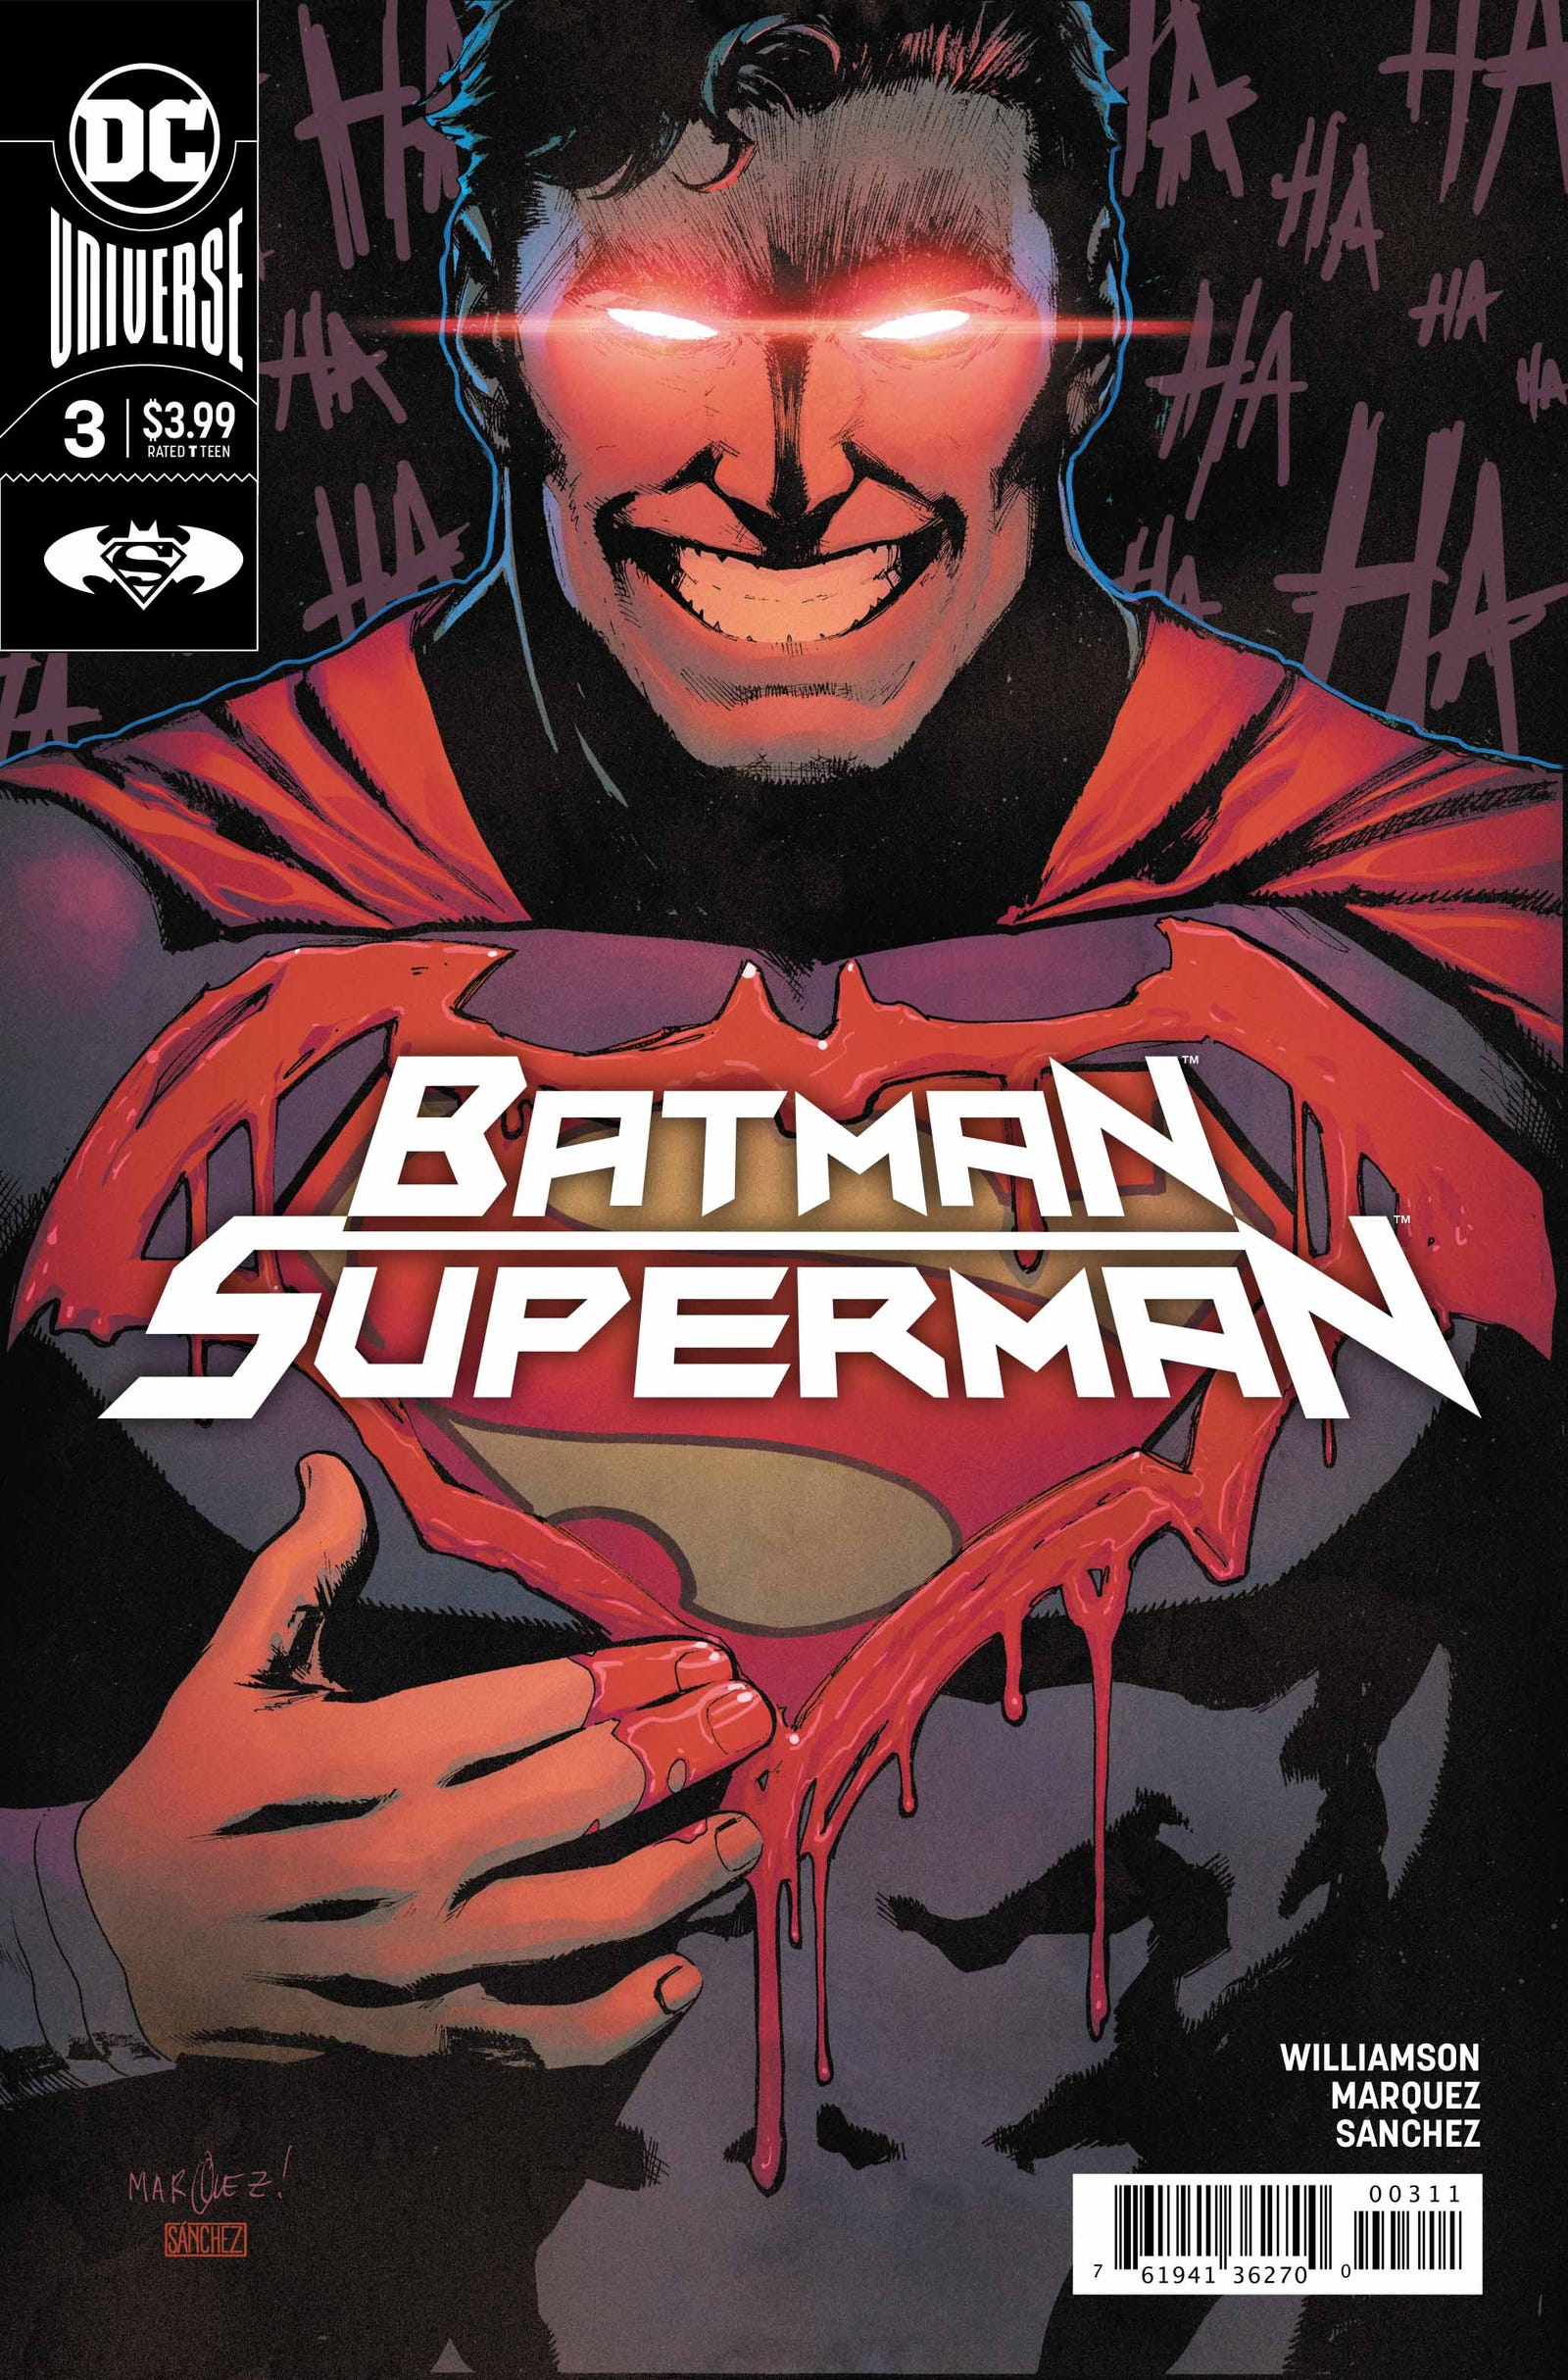 Cover by David Marquez and Alejandro Sanchez